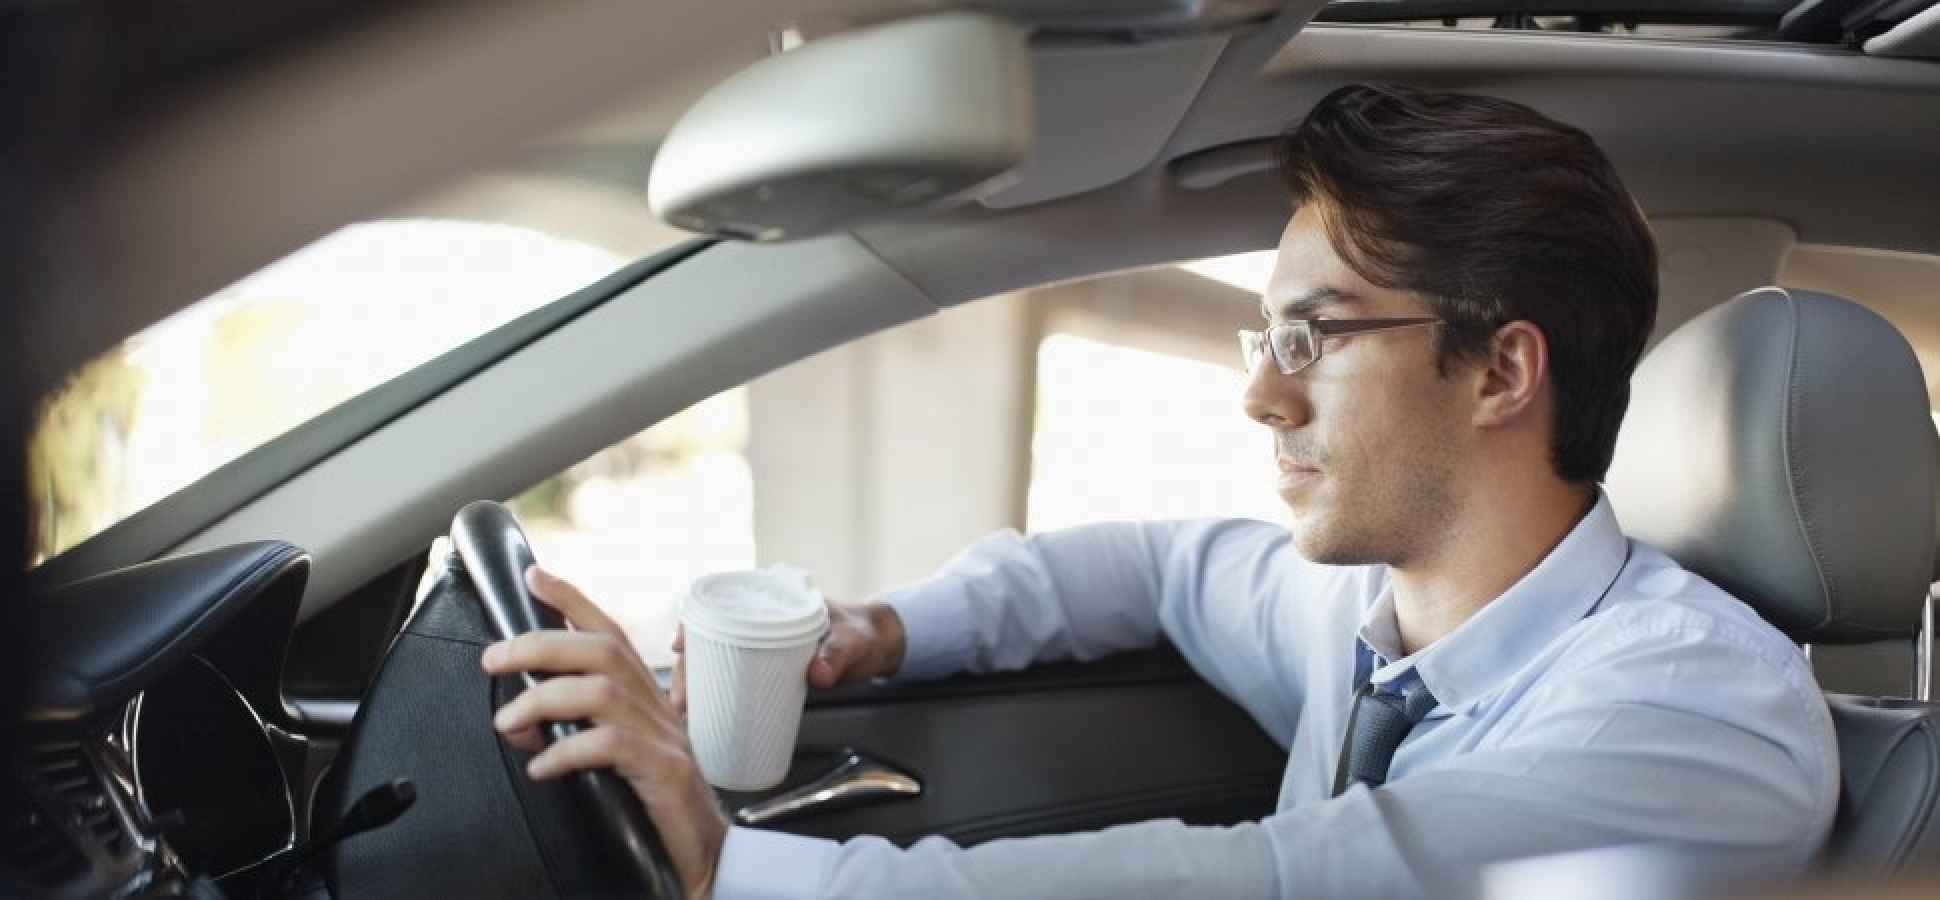 That Long Commute May Be Harming Your Health foto